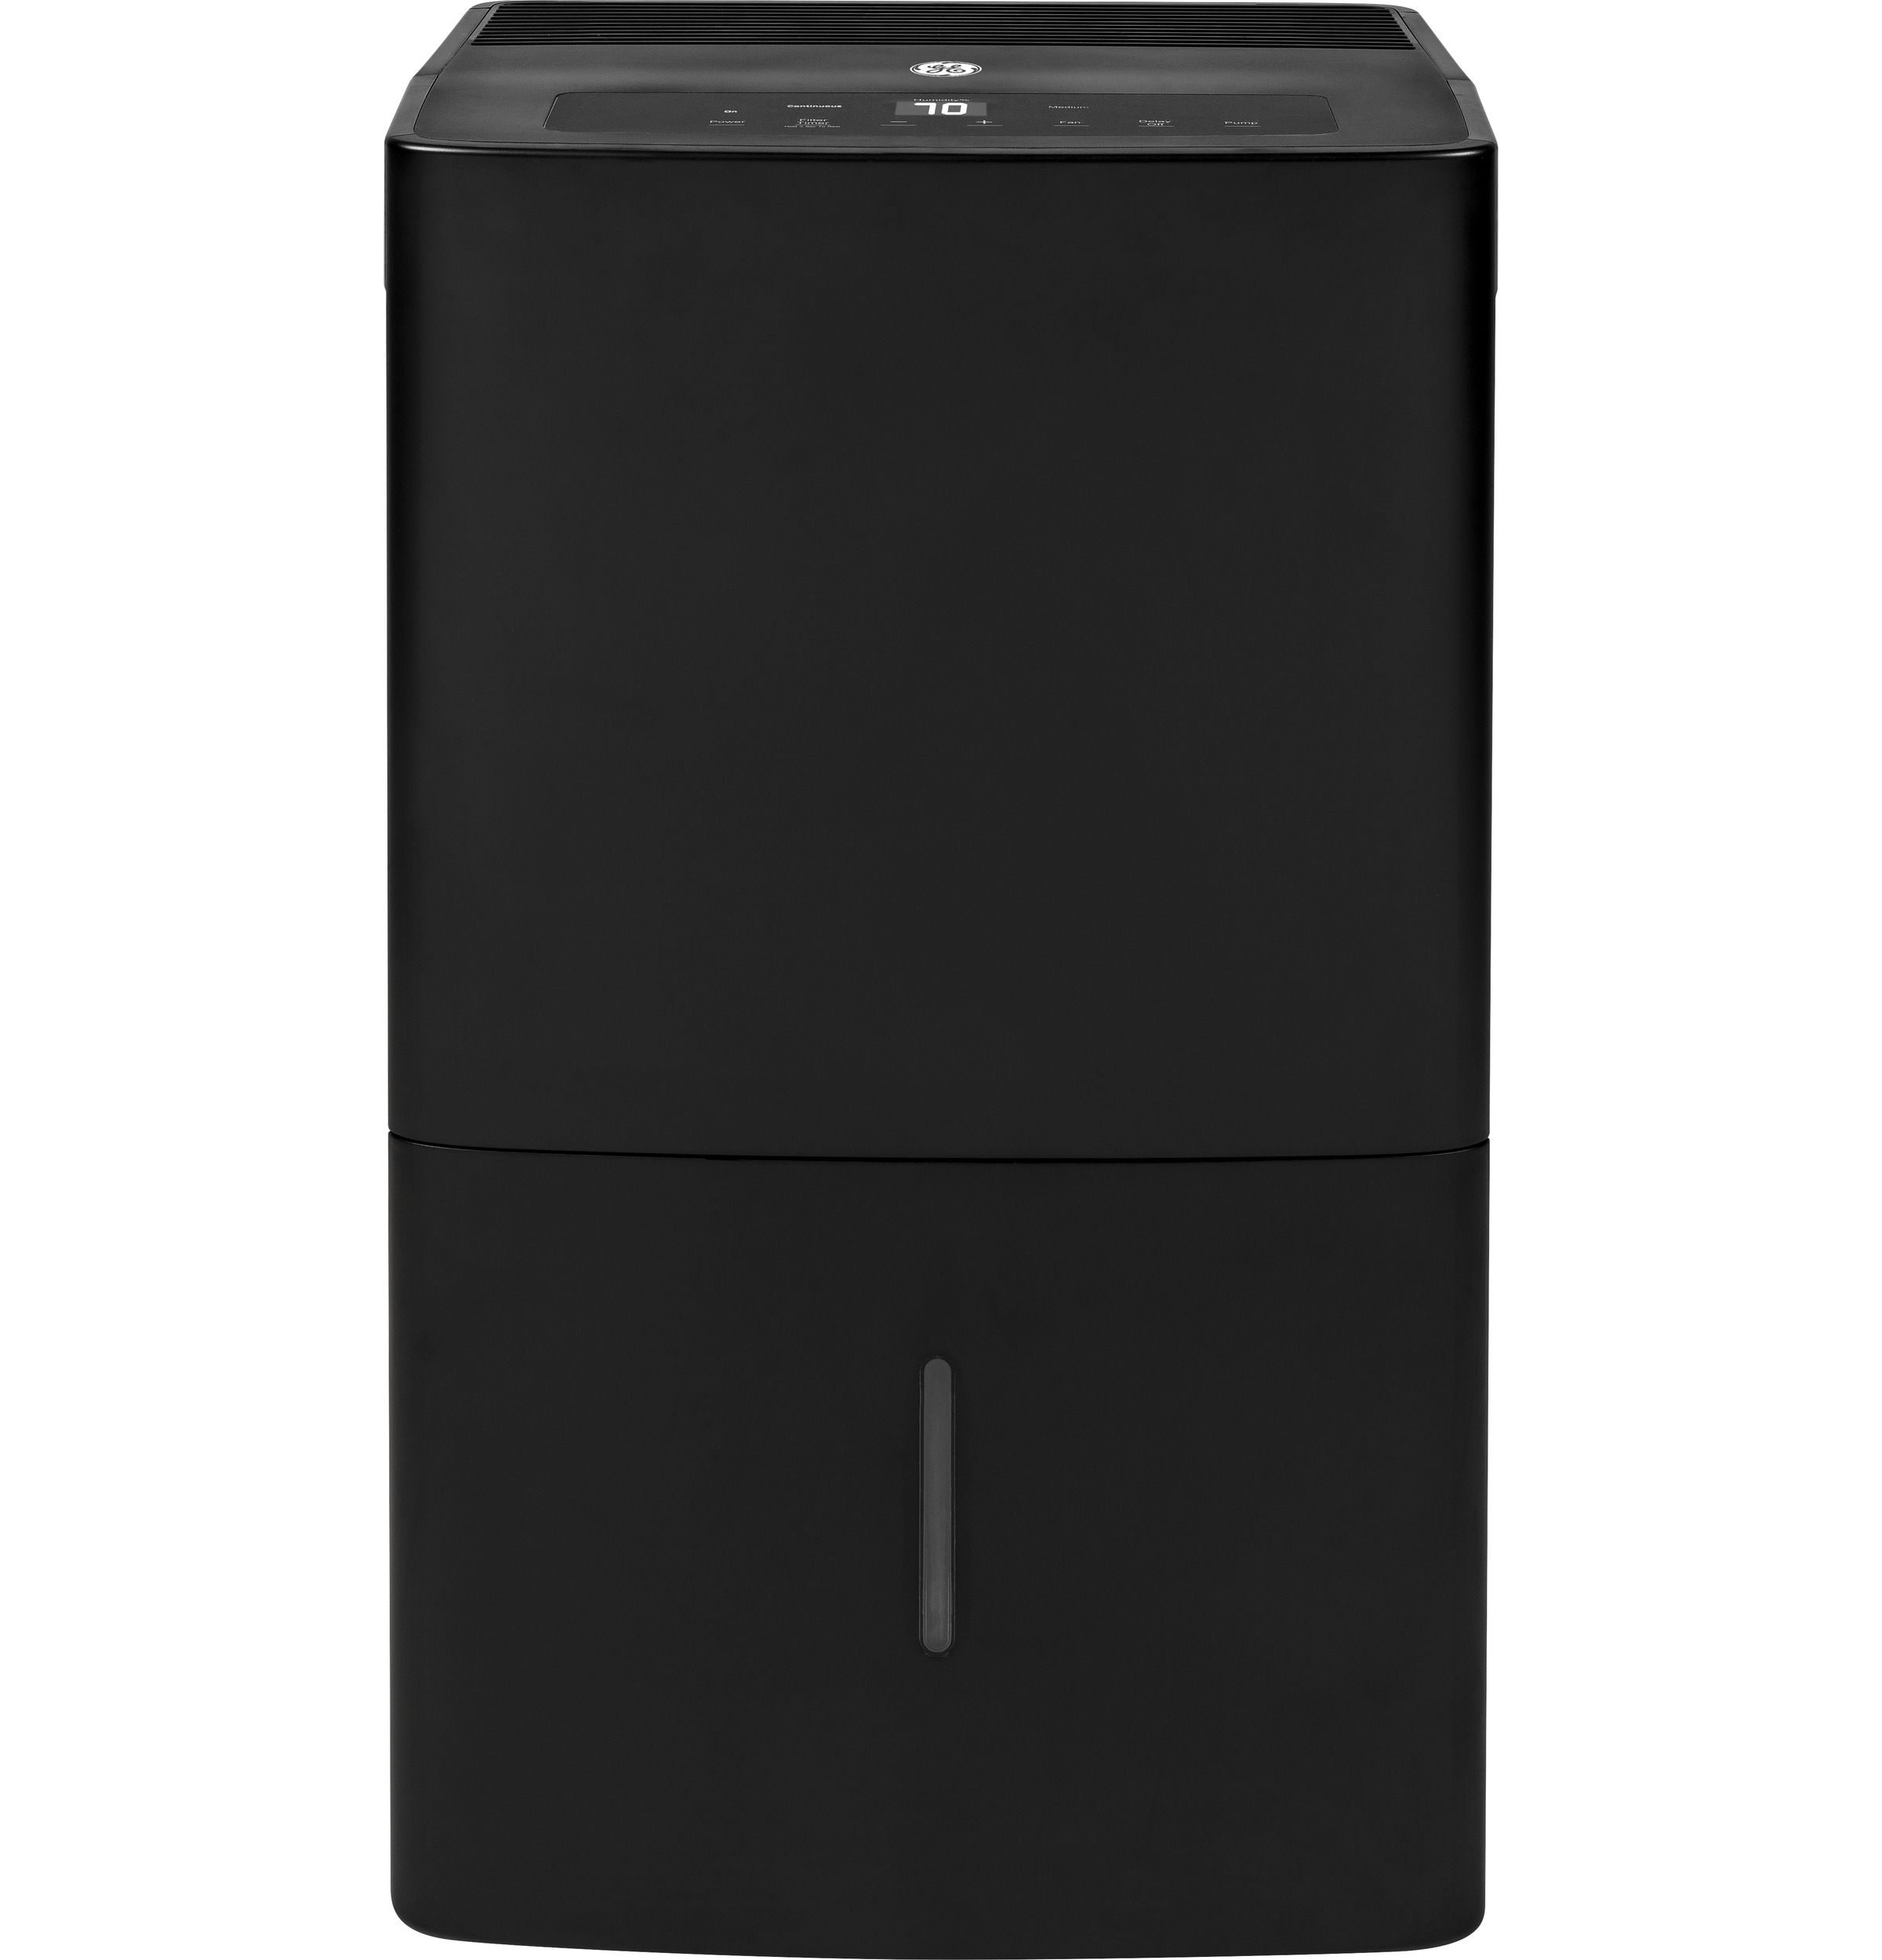 Model: APER50LZ | GE GE® Dehumidifier with Built-in Pump